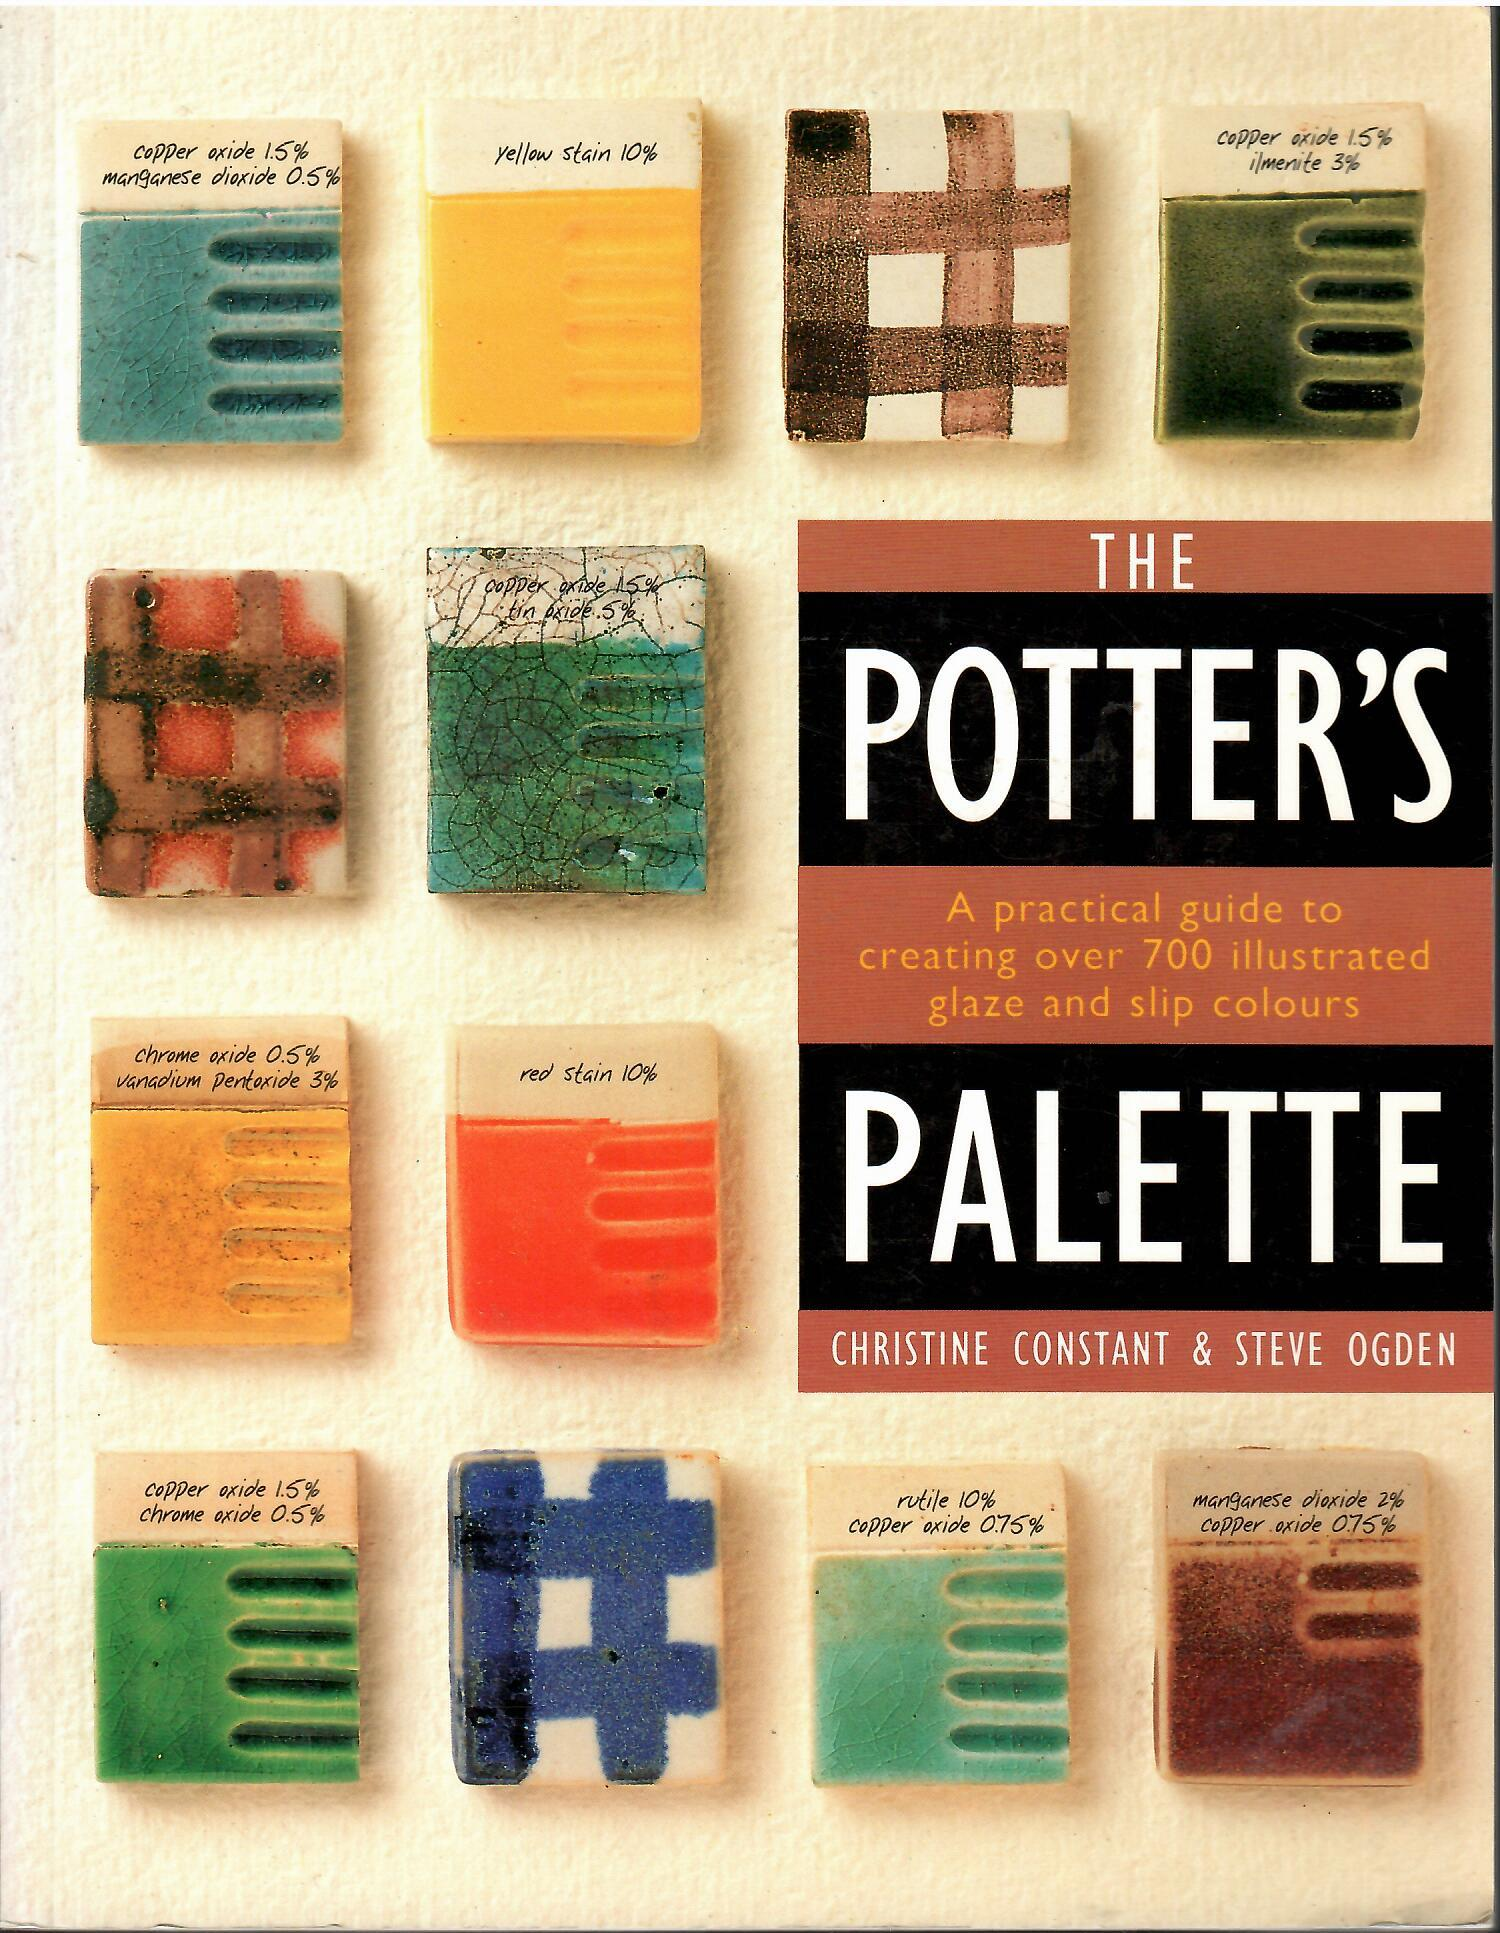 Image for A Practical Guide to Creating over 700 Illustrated Glaze and Slip Colour; THE POTTER'S PALETTE